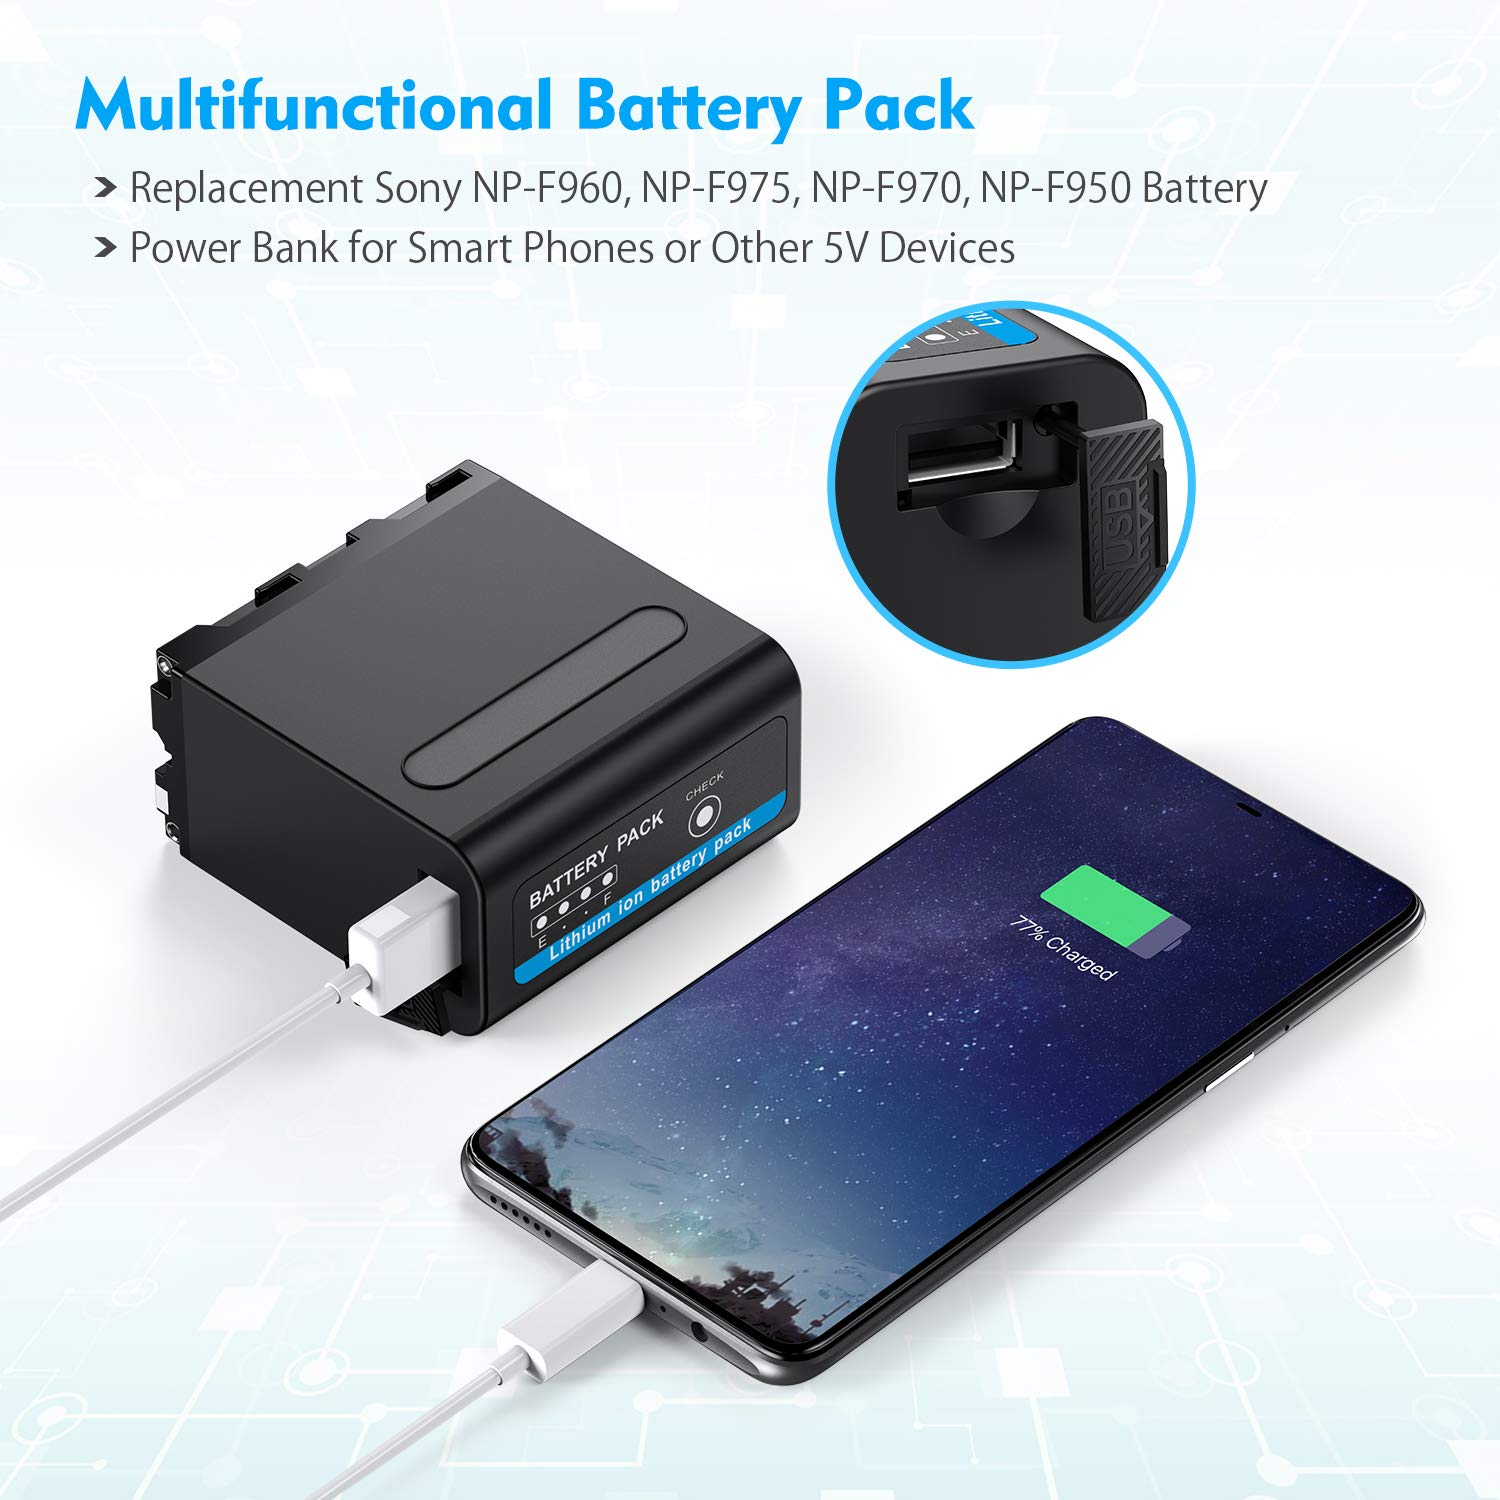 Powerextra Multifunctional Battery Pack Power Bank with USB Output for Sony NP-F970, NP-F975, NP-F960, NP-F950, NP-F930 Battery